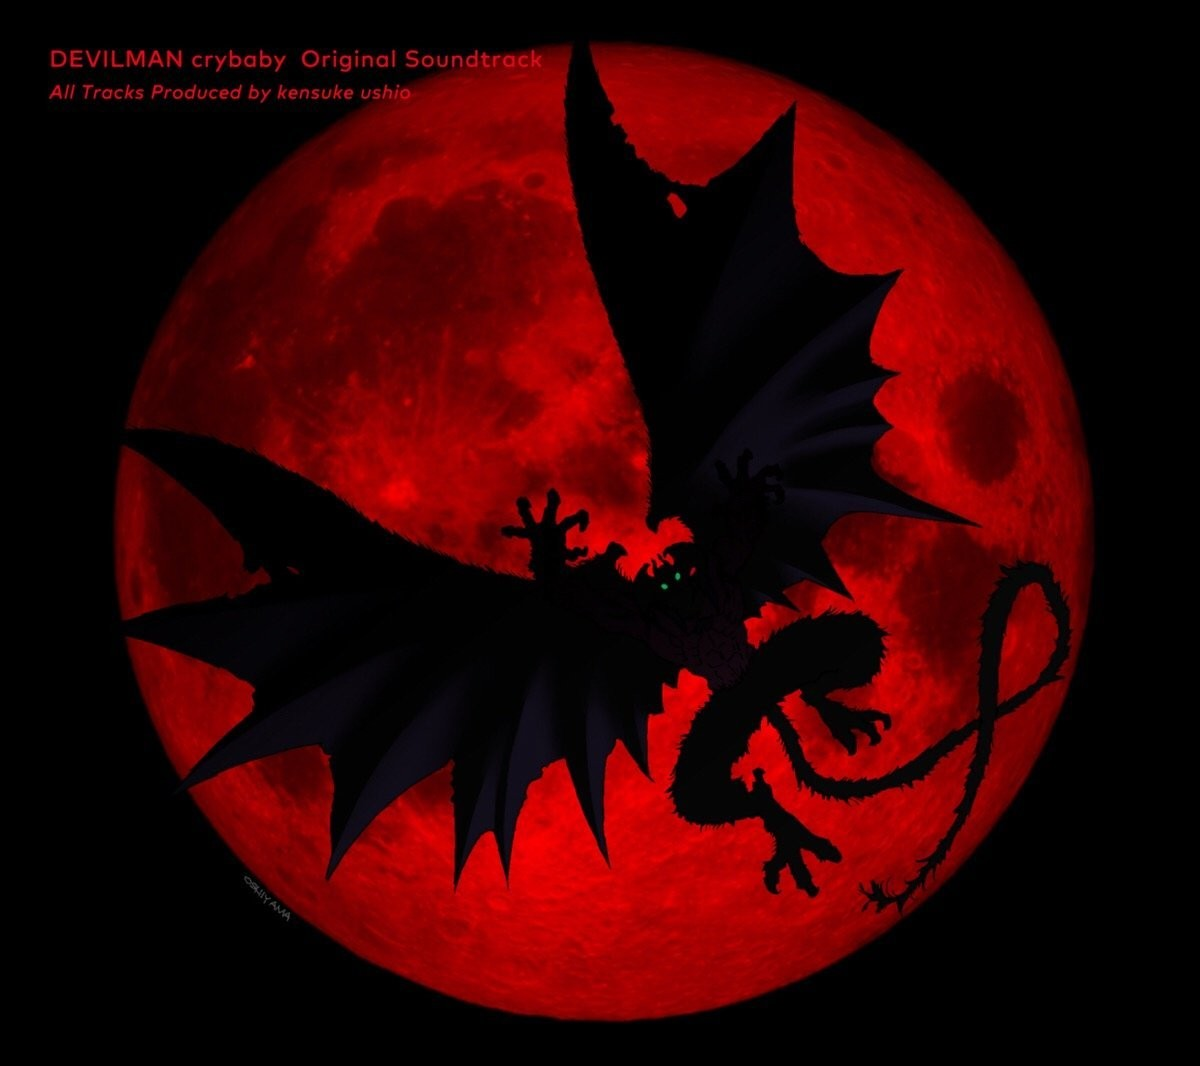 DEVILMAN crybaby Original Soundtrack